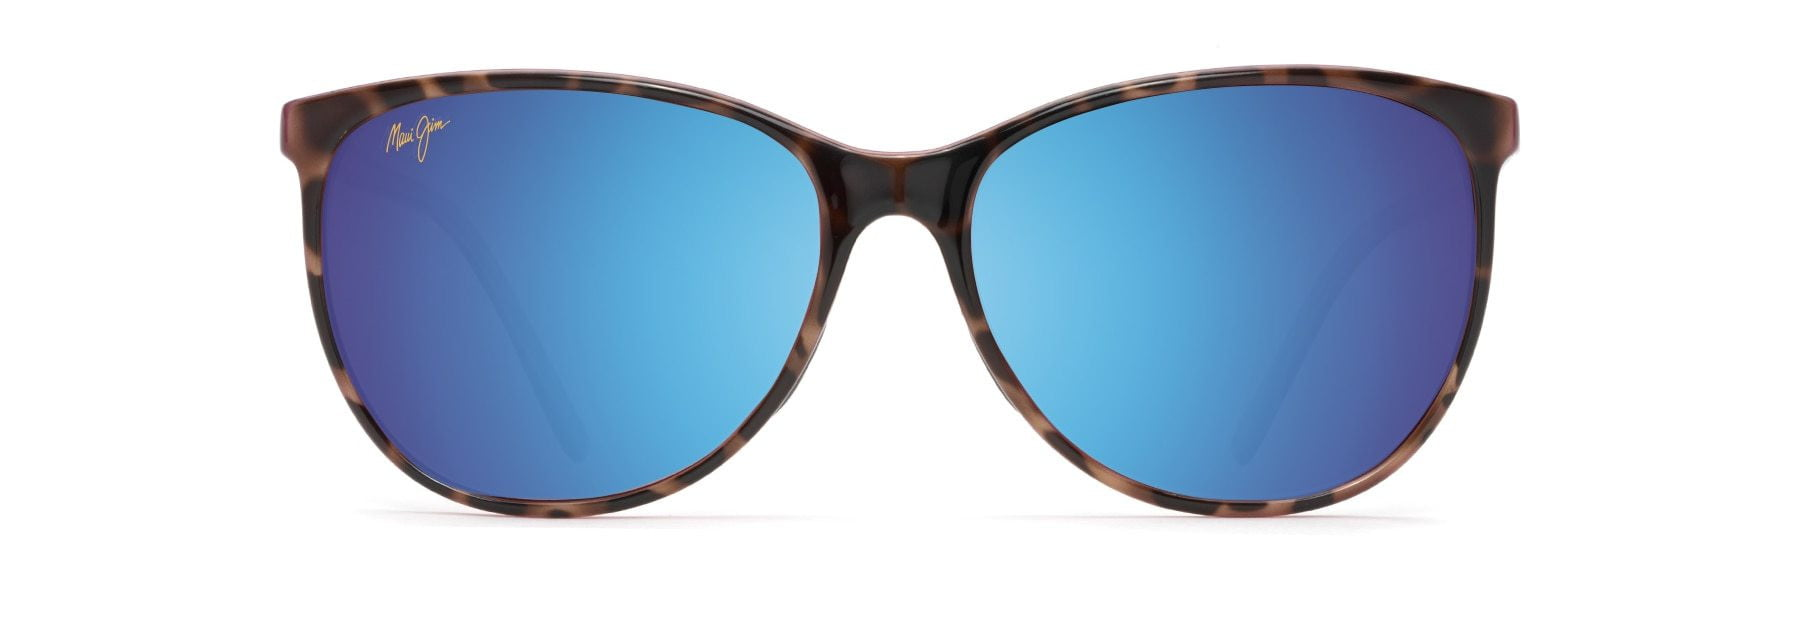 MyMaui Ocean MM723-021 Sunglasses